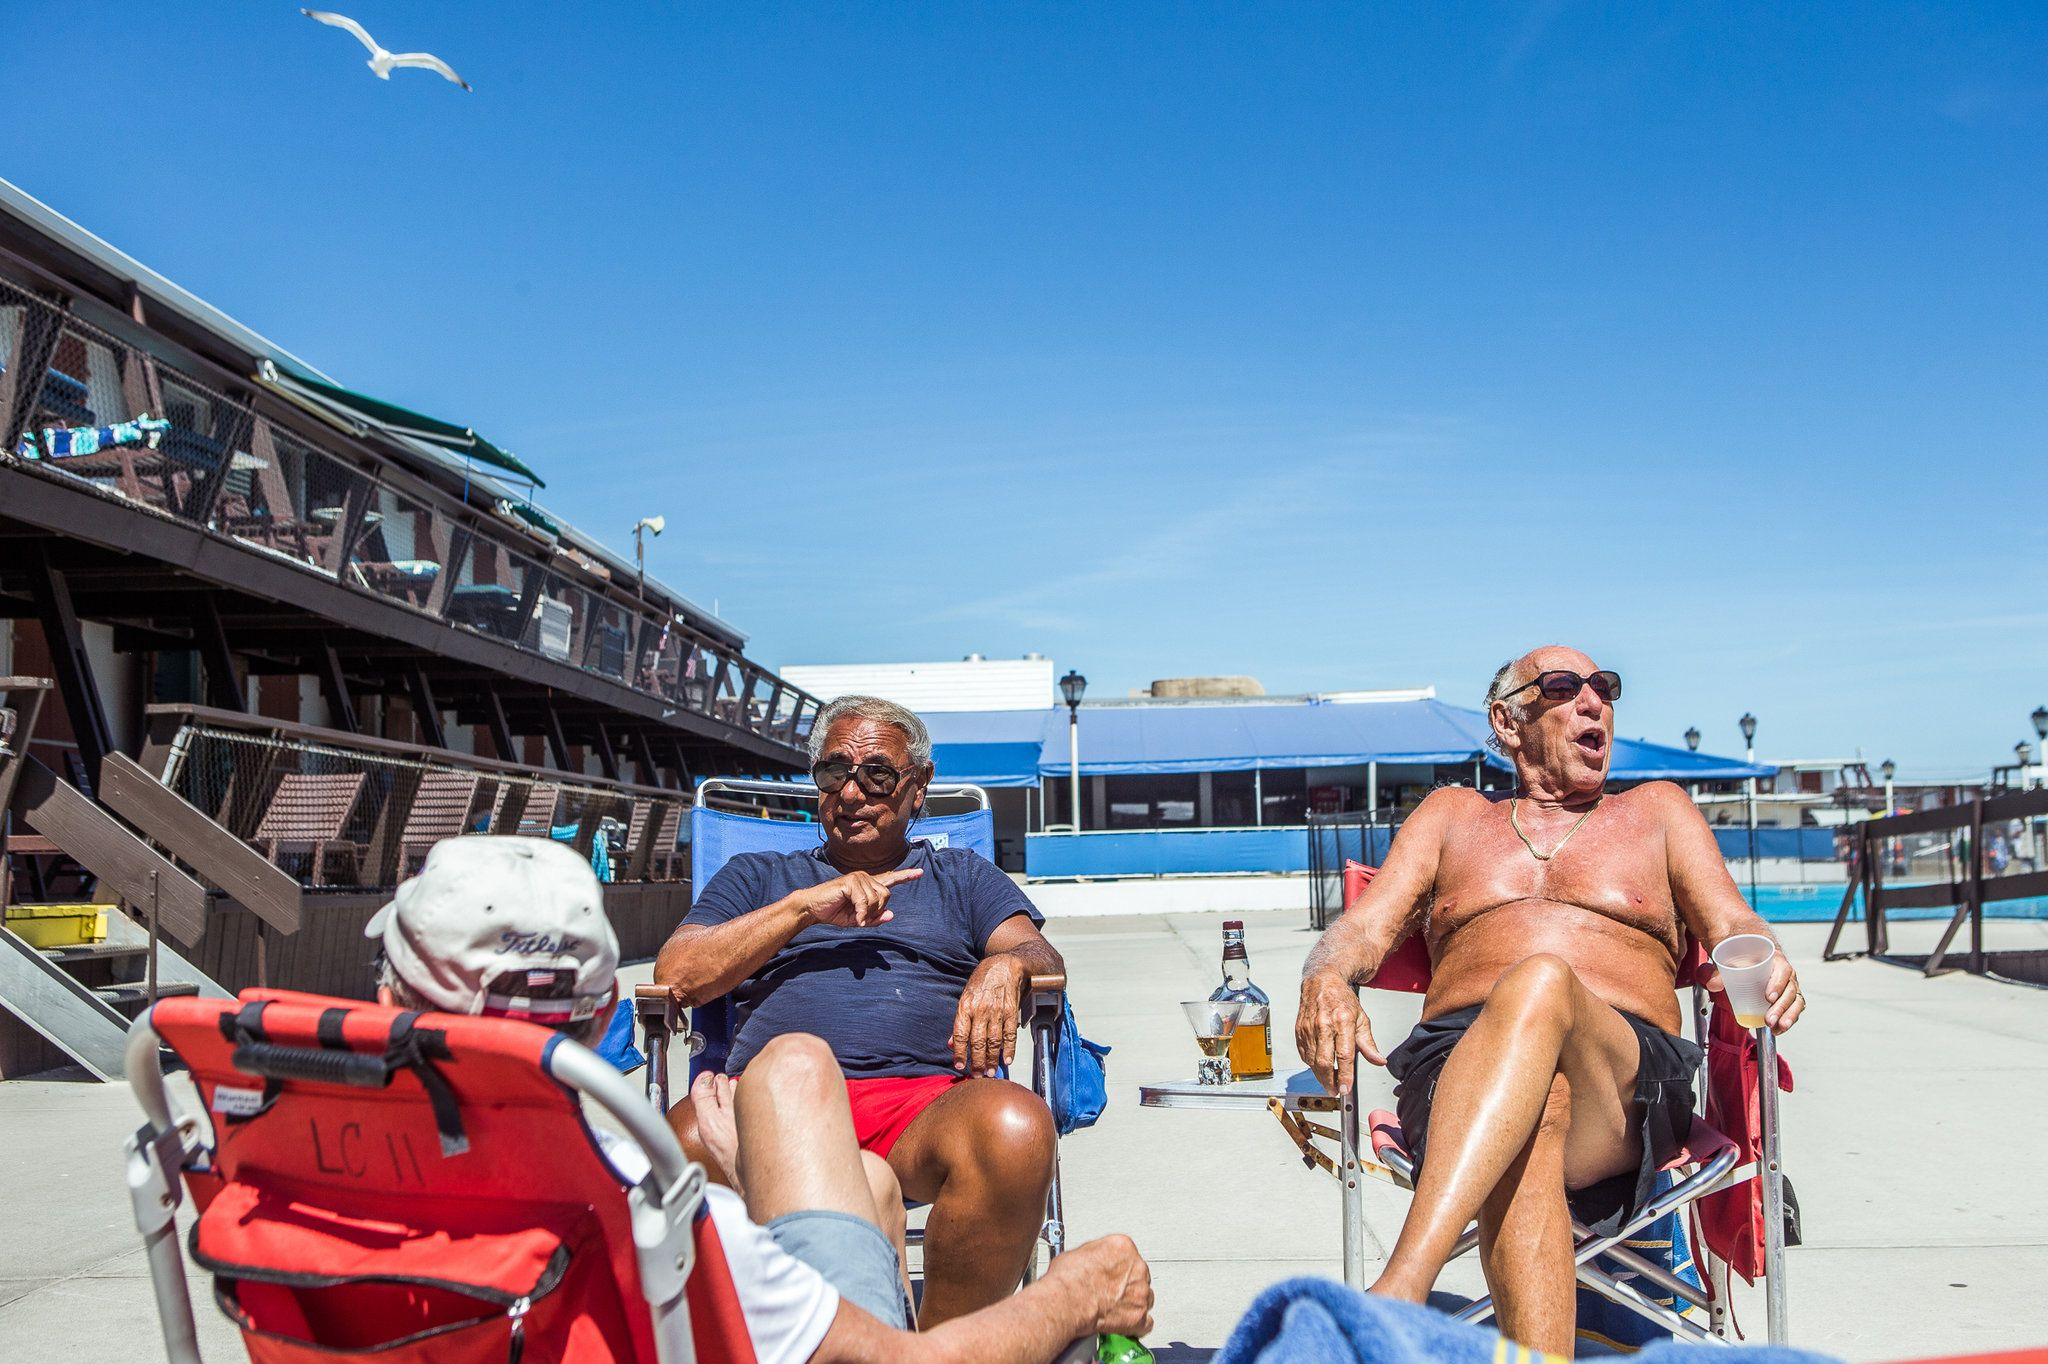 The Silver Gull Beach Club Is Part Of A Disearing World Private Waterfront Clubs In New York City